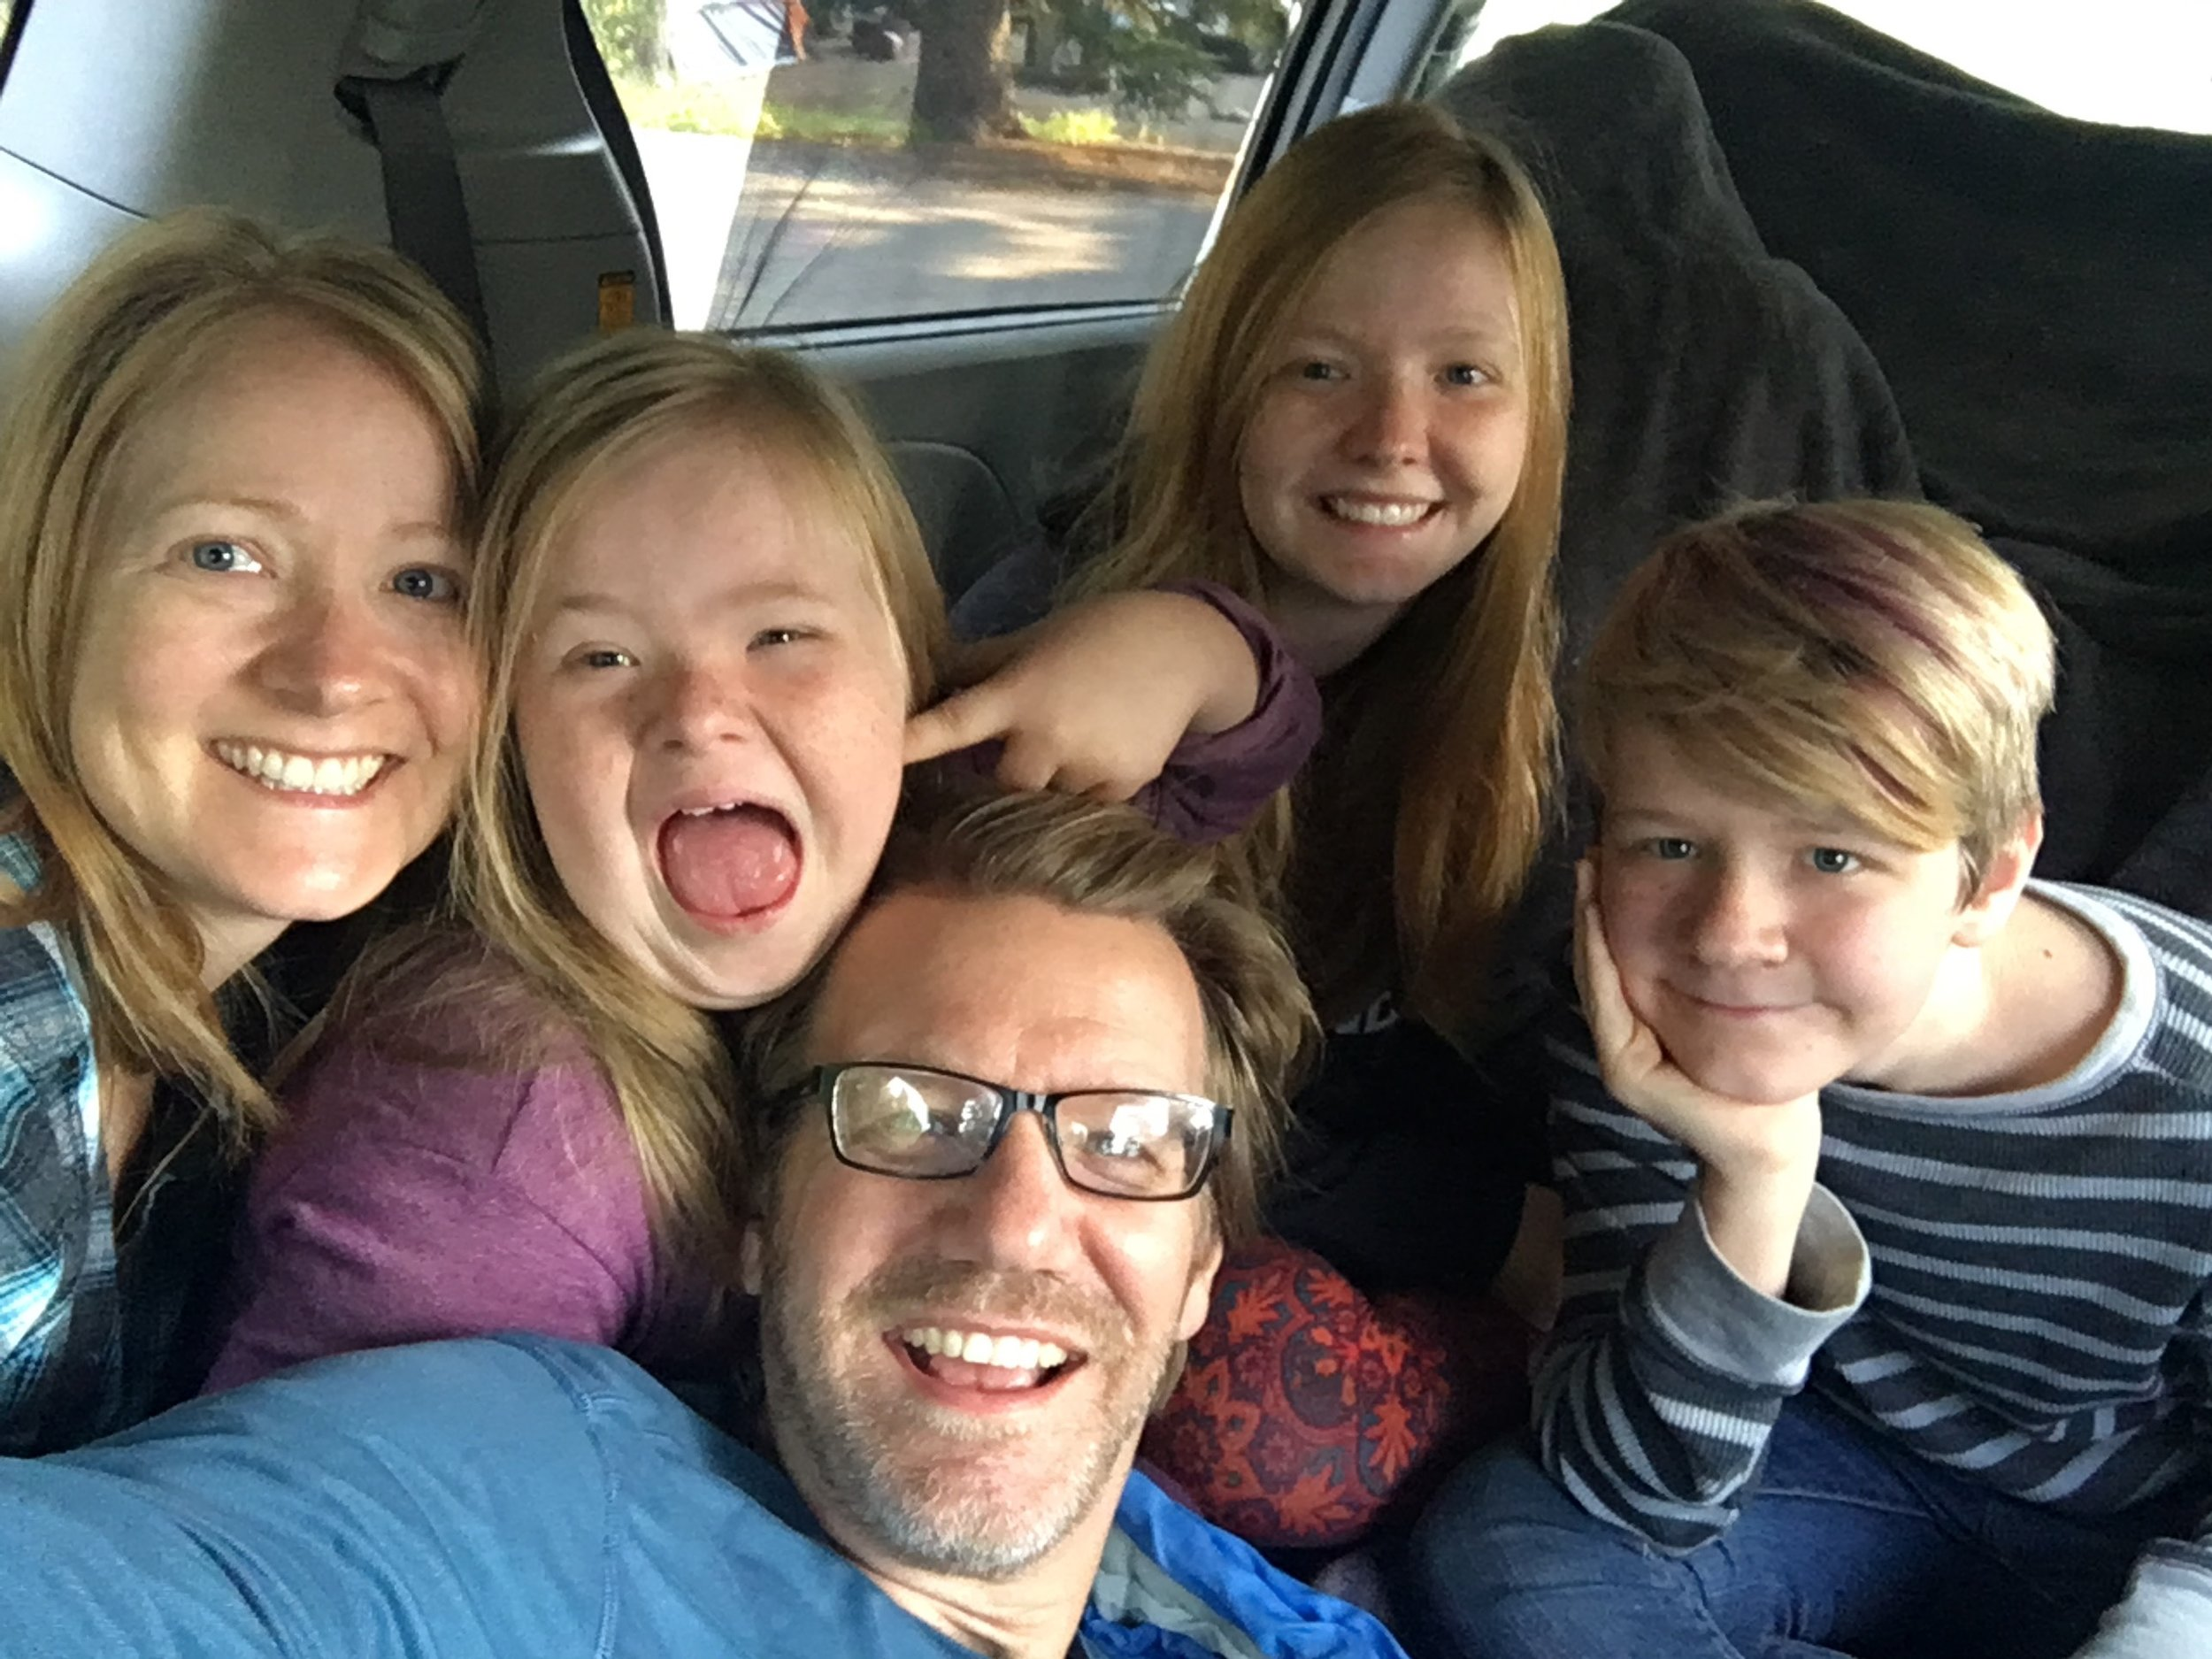 Snuggle fest in the van in Banff. Spending time wtih the people who matter most to me.